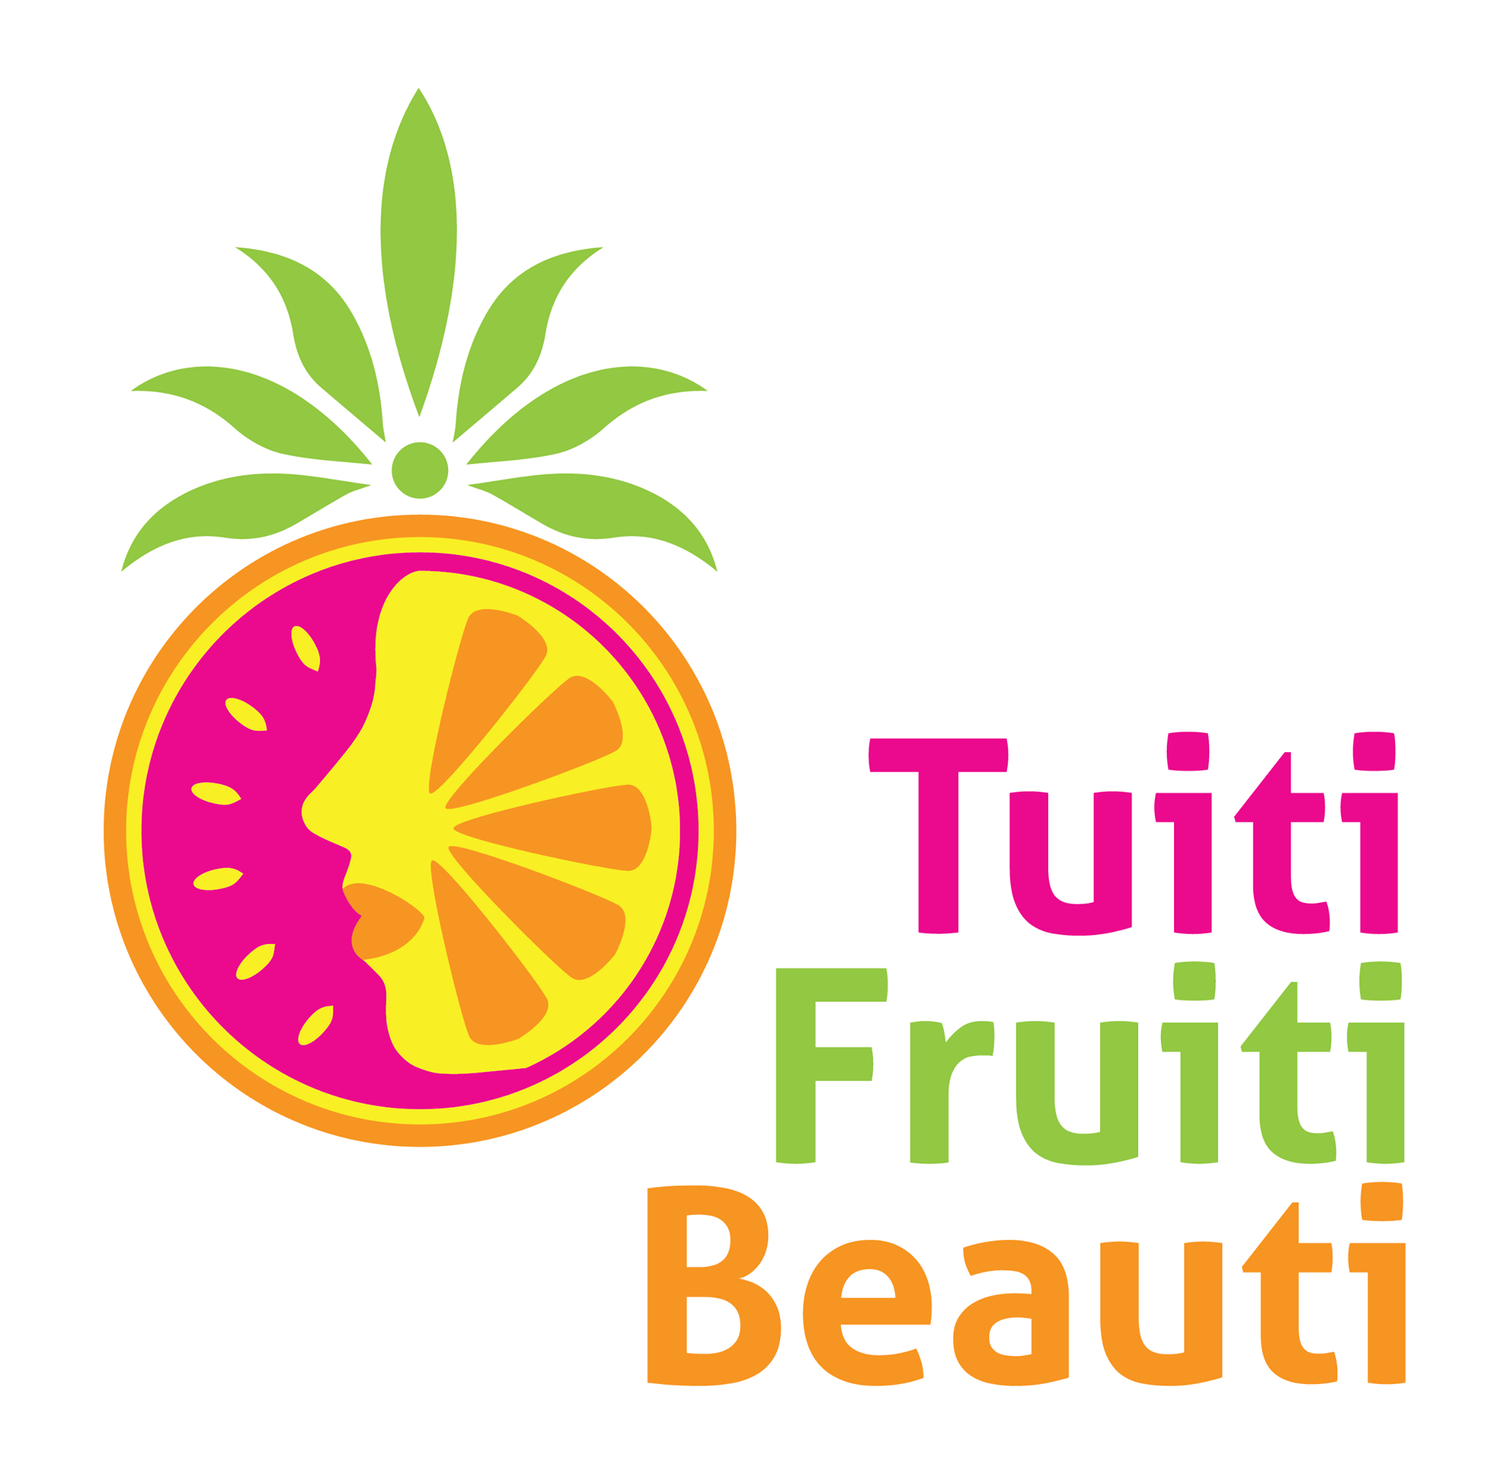 Tuiti Fruiti Beauti